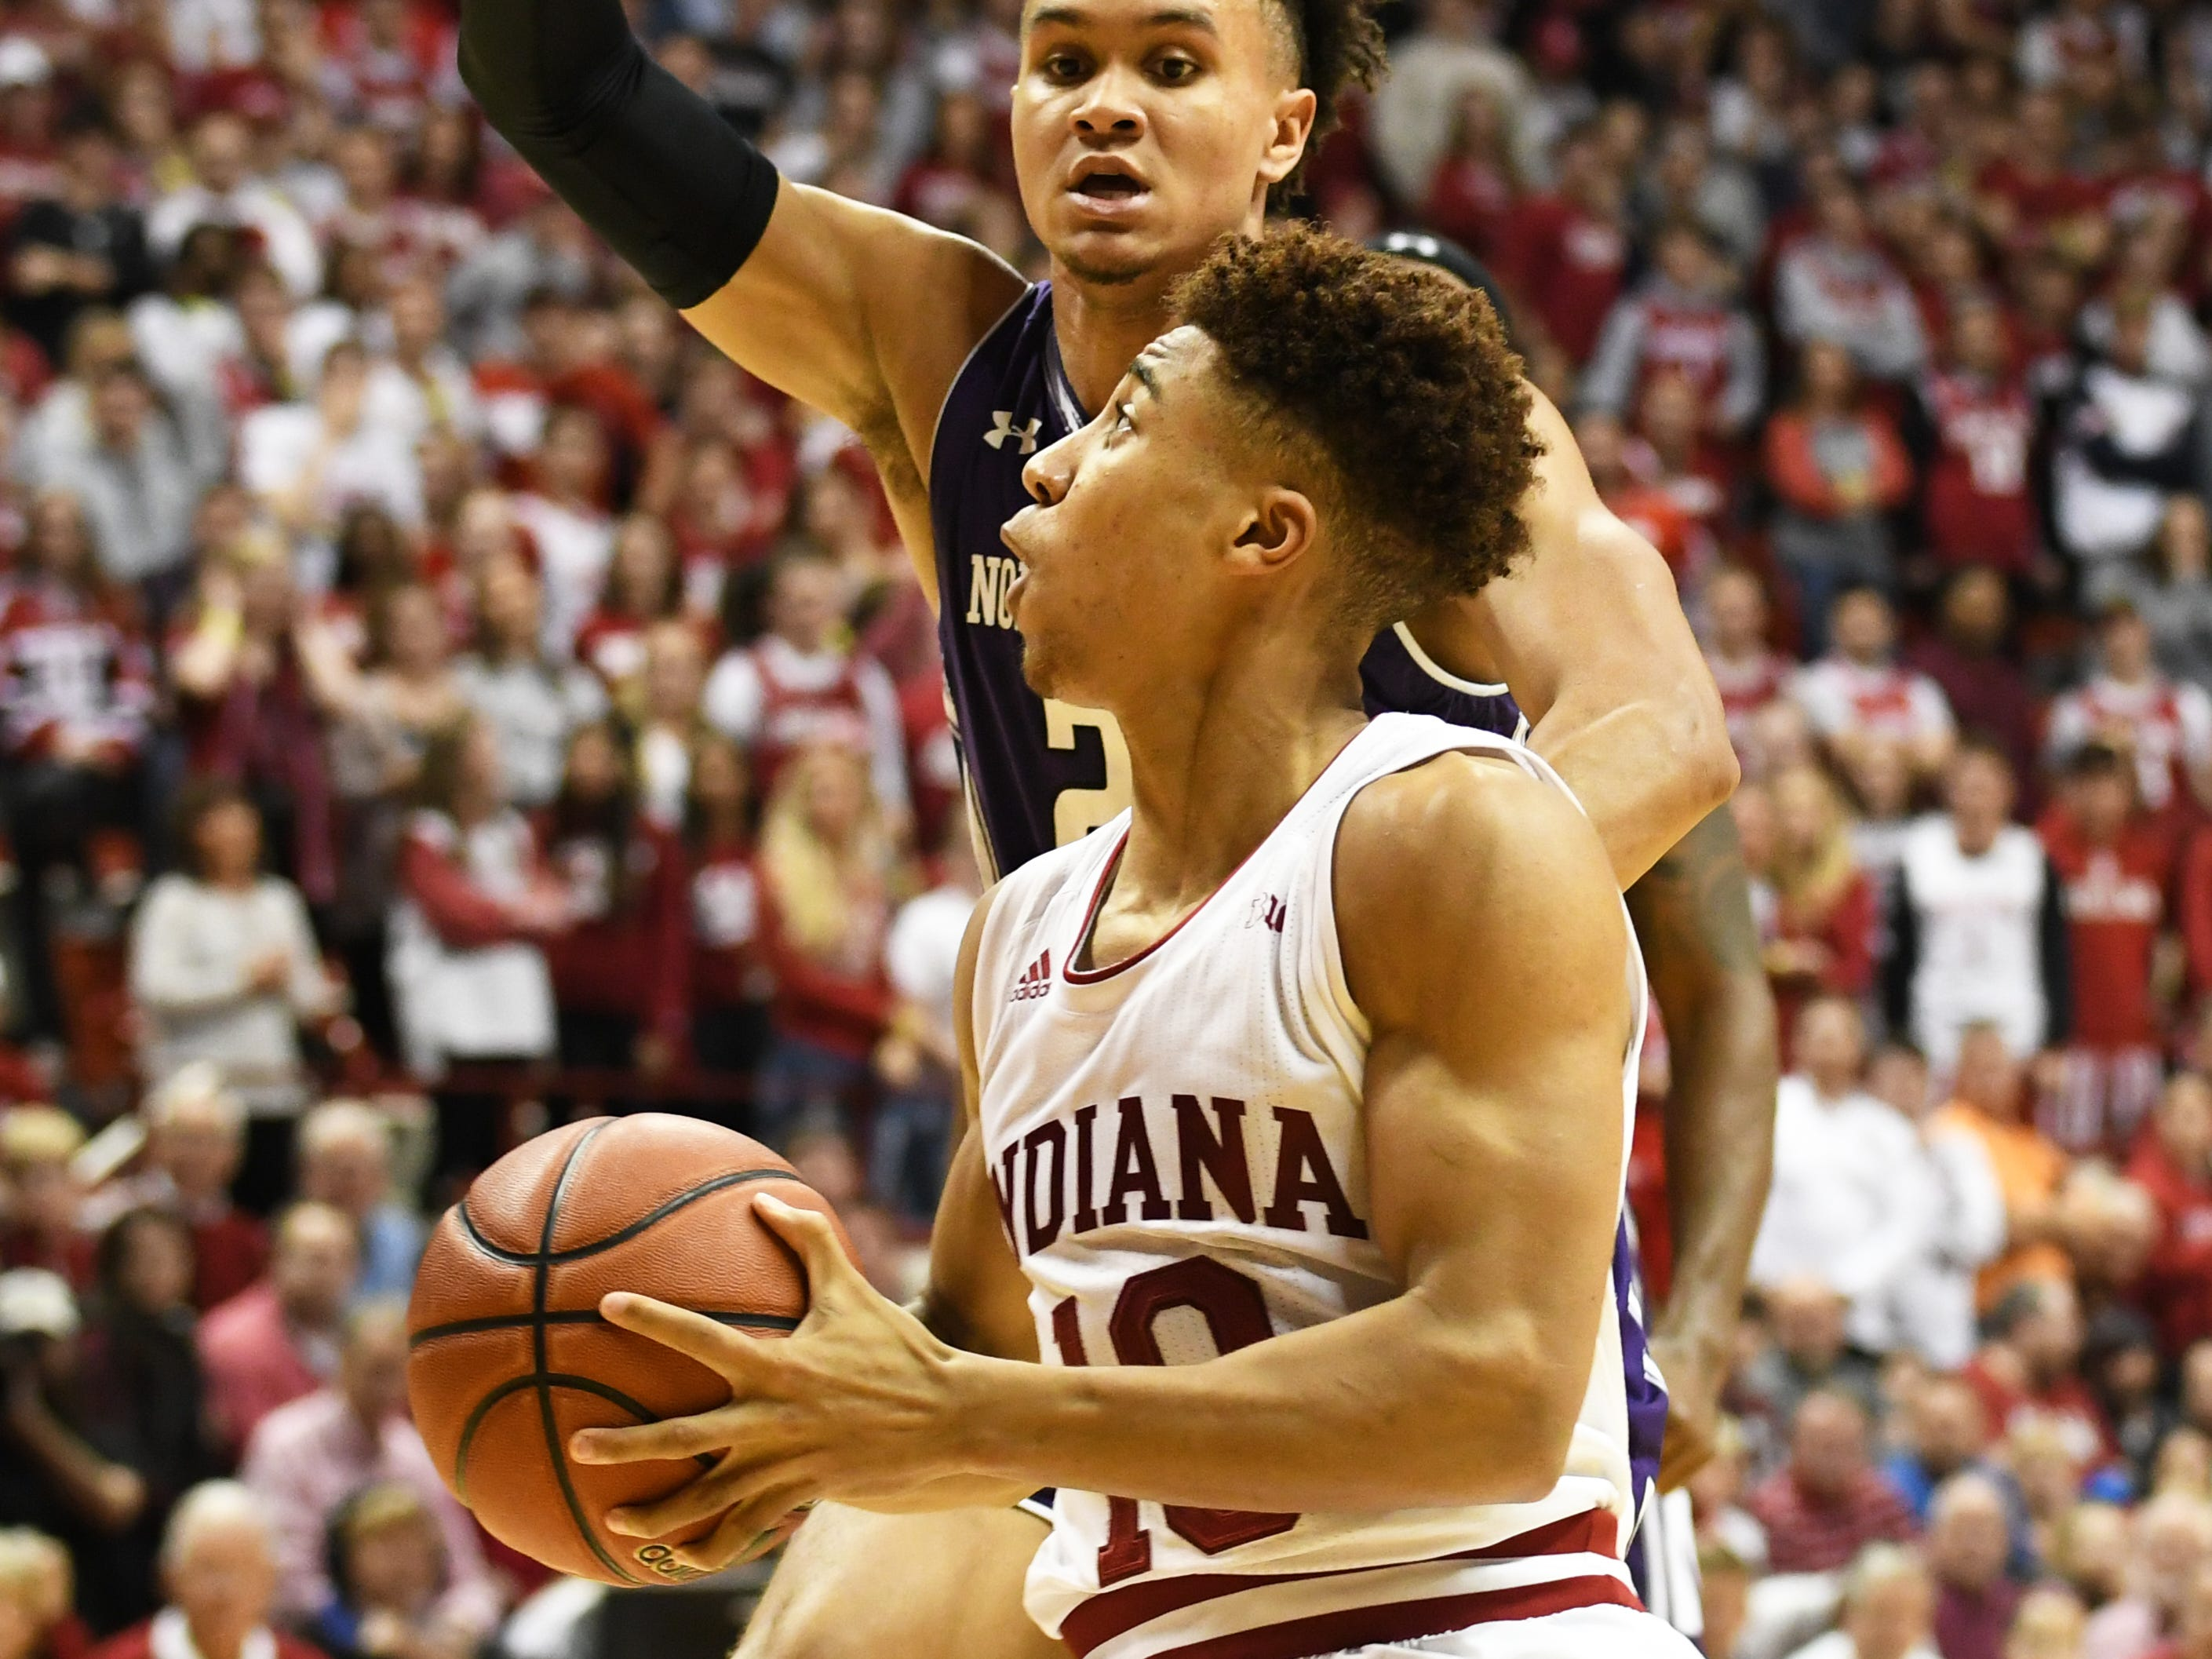 Indiana Hoosiers guard Rob Phinisee (10) goes to the basket during the game against Northwestern at Simon Skjodt Assembly Hall in Bloomington, Ind., on Saturday, Dec. 1, 2018.